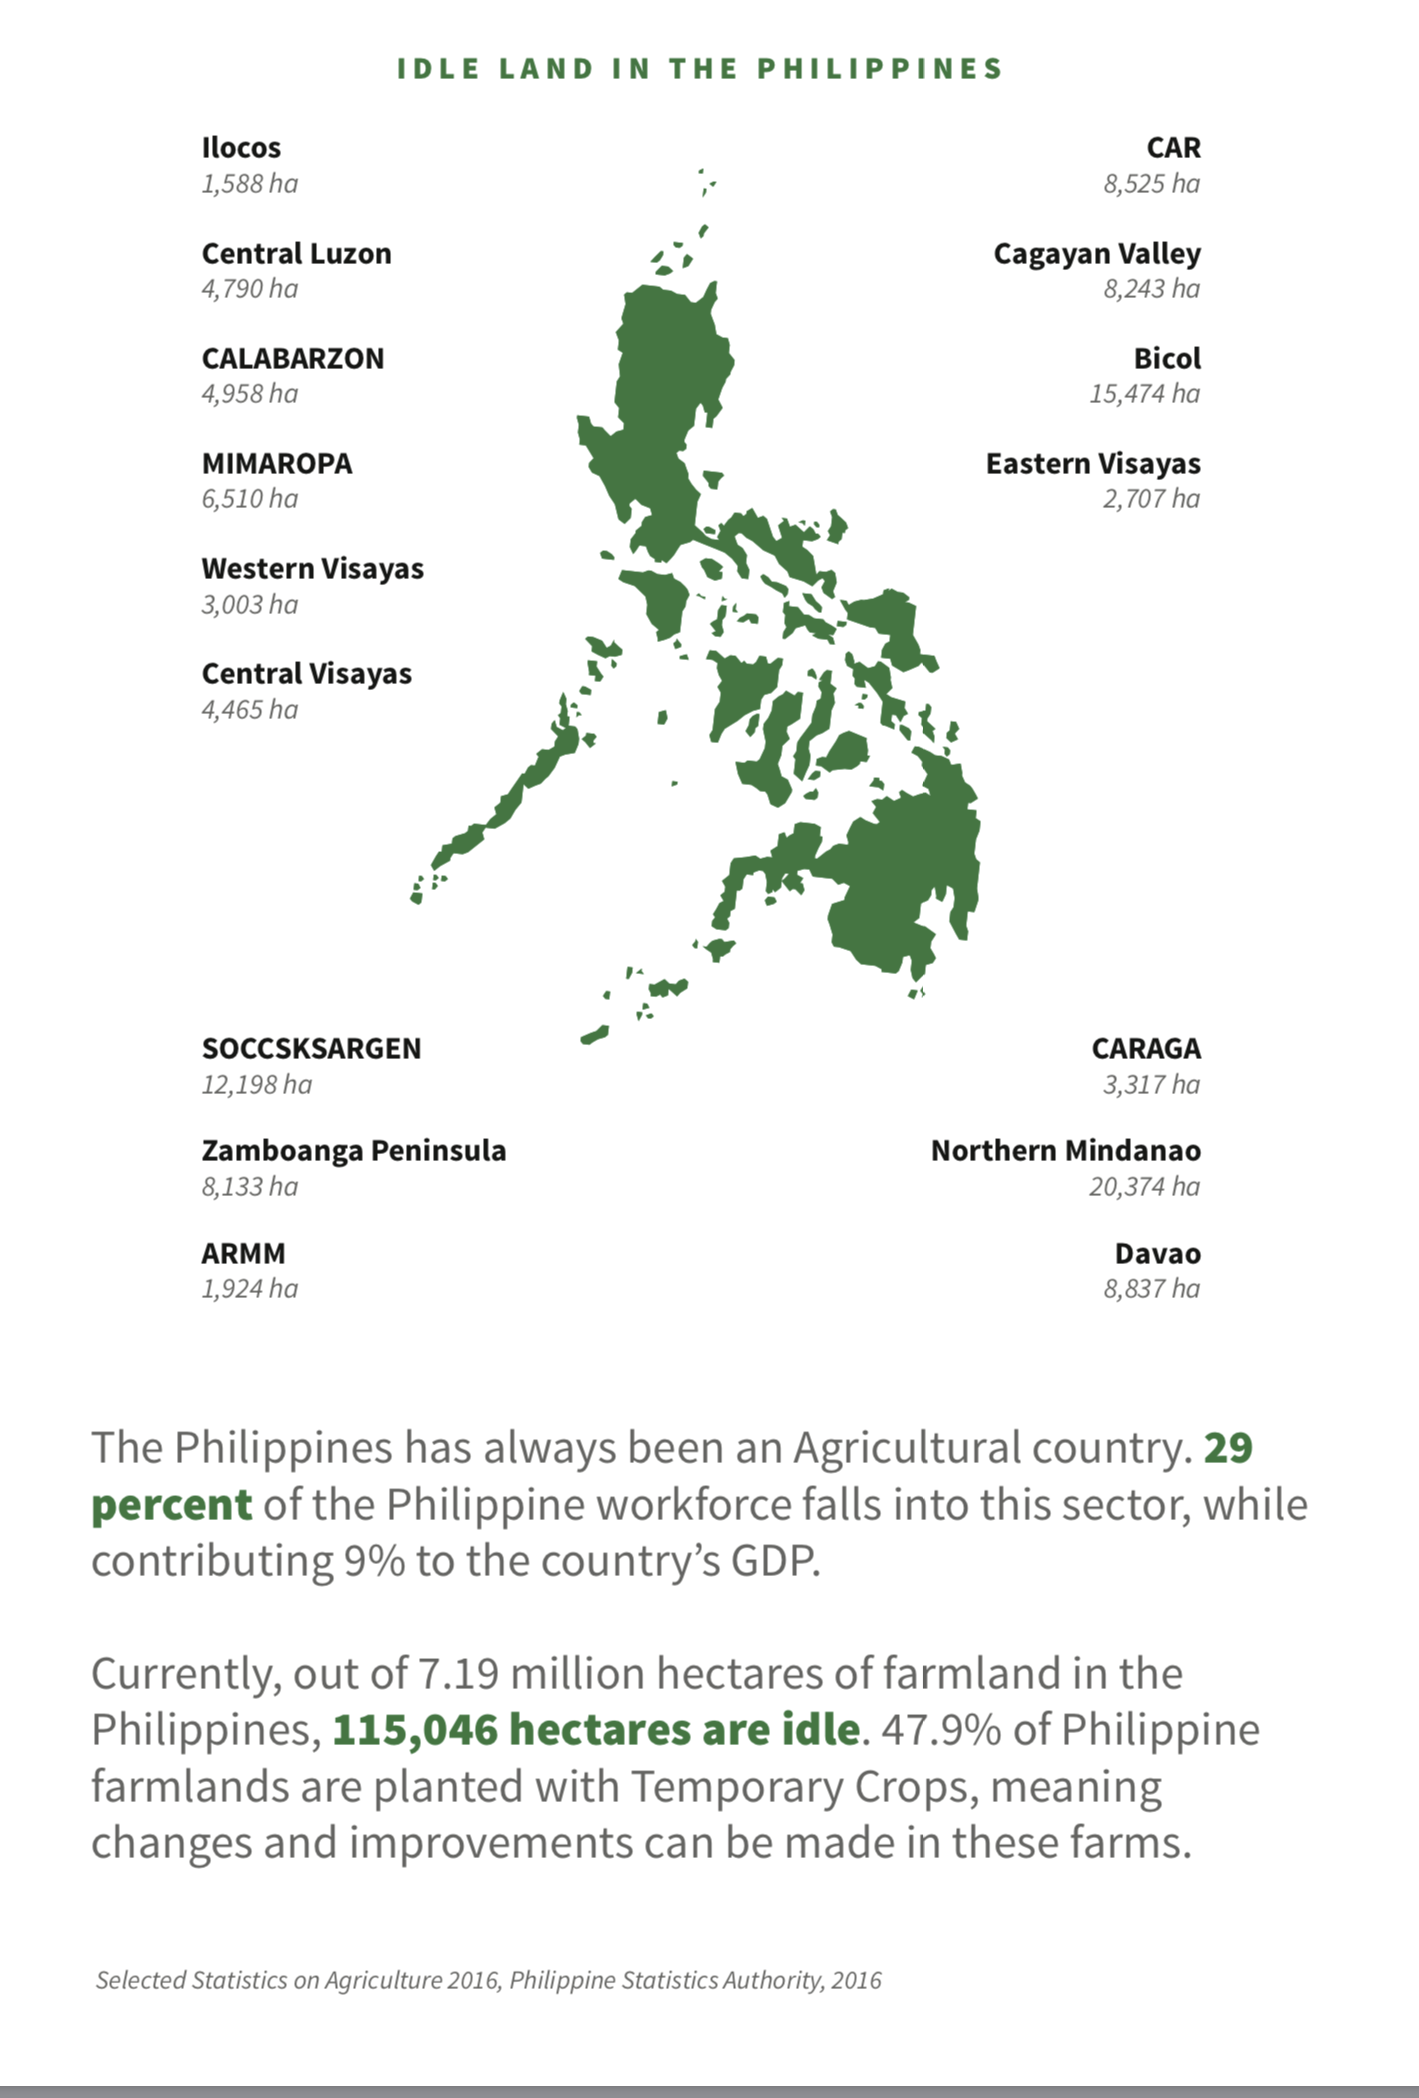 Idle to Ideal - Currently, 1.1 Billion square meters of agricultural land in the Philippines are idle. Dream Agritech's mission is to turn these lands into a food and resource producing Utopia.Learn More